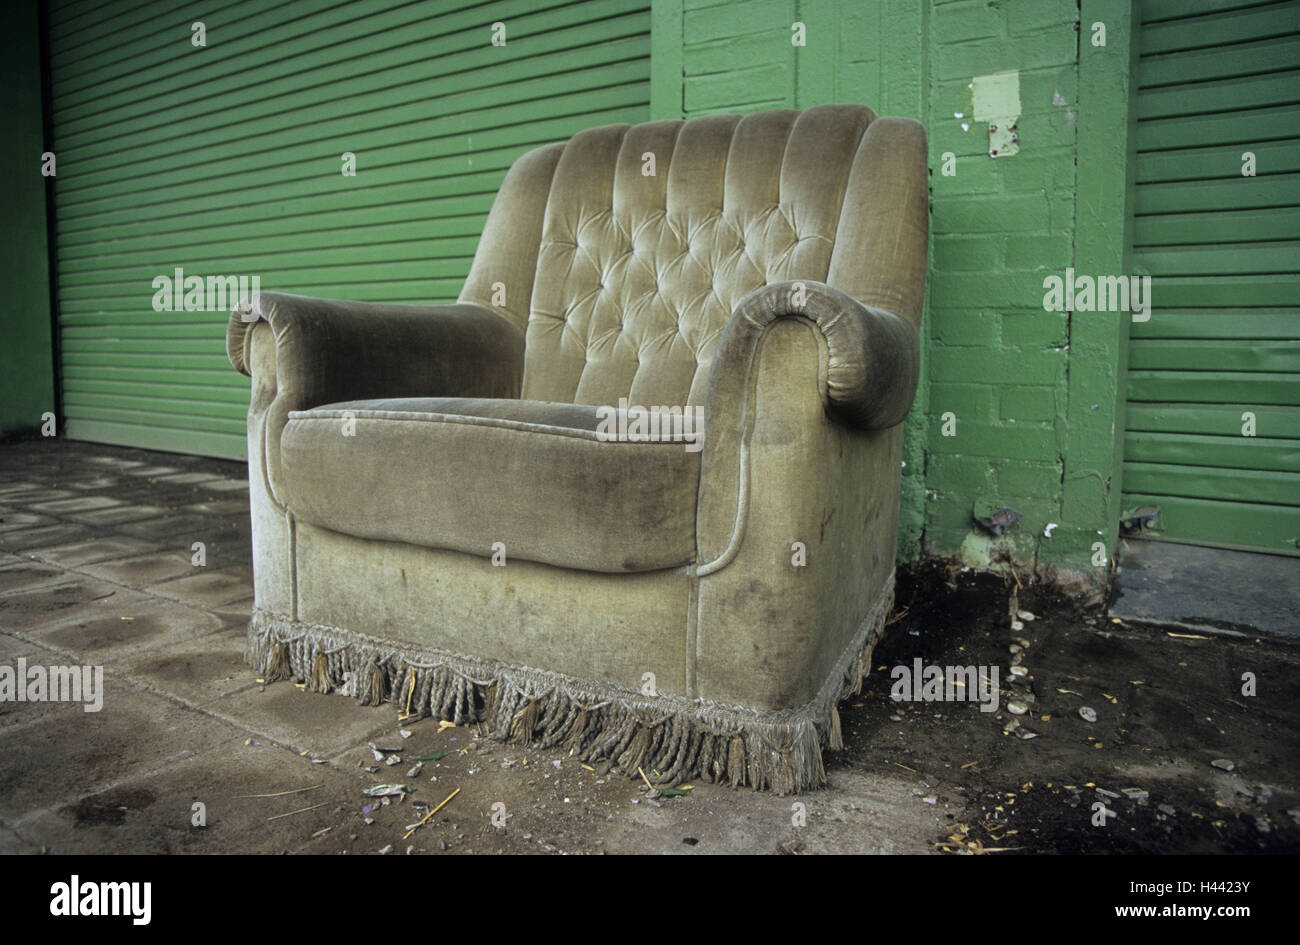 building facade green upholstered chair old chair seat opportunity